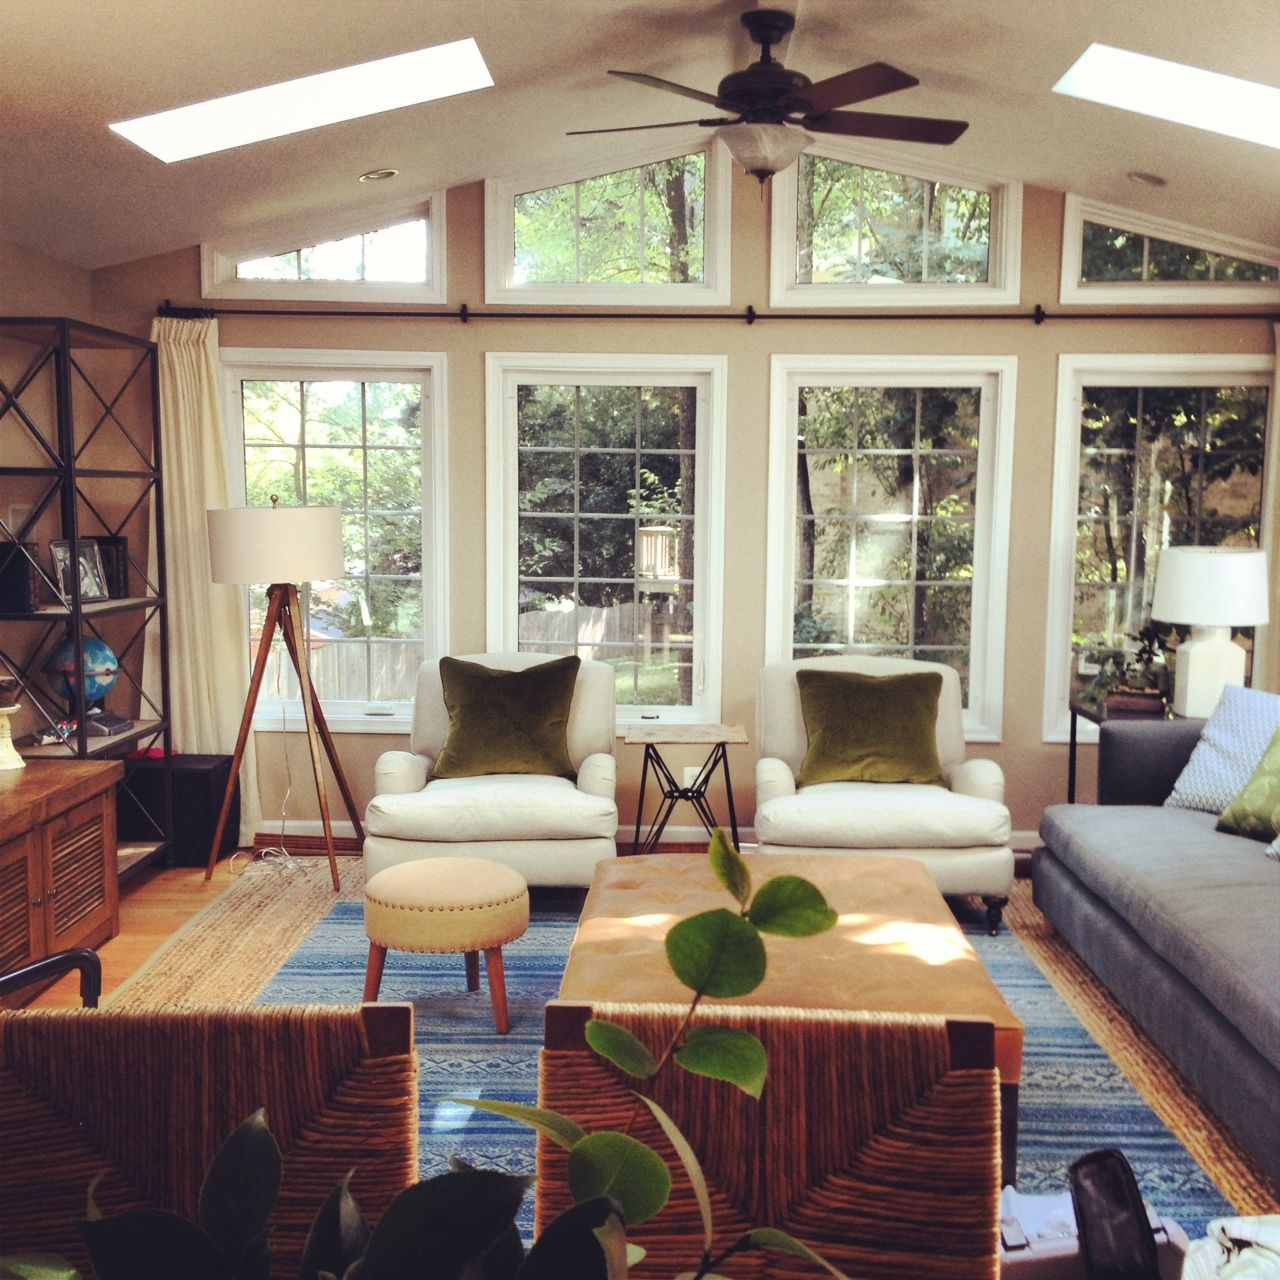 Family Room Additions: Just Really Like The Whole Vibe Of This Room! Clients